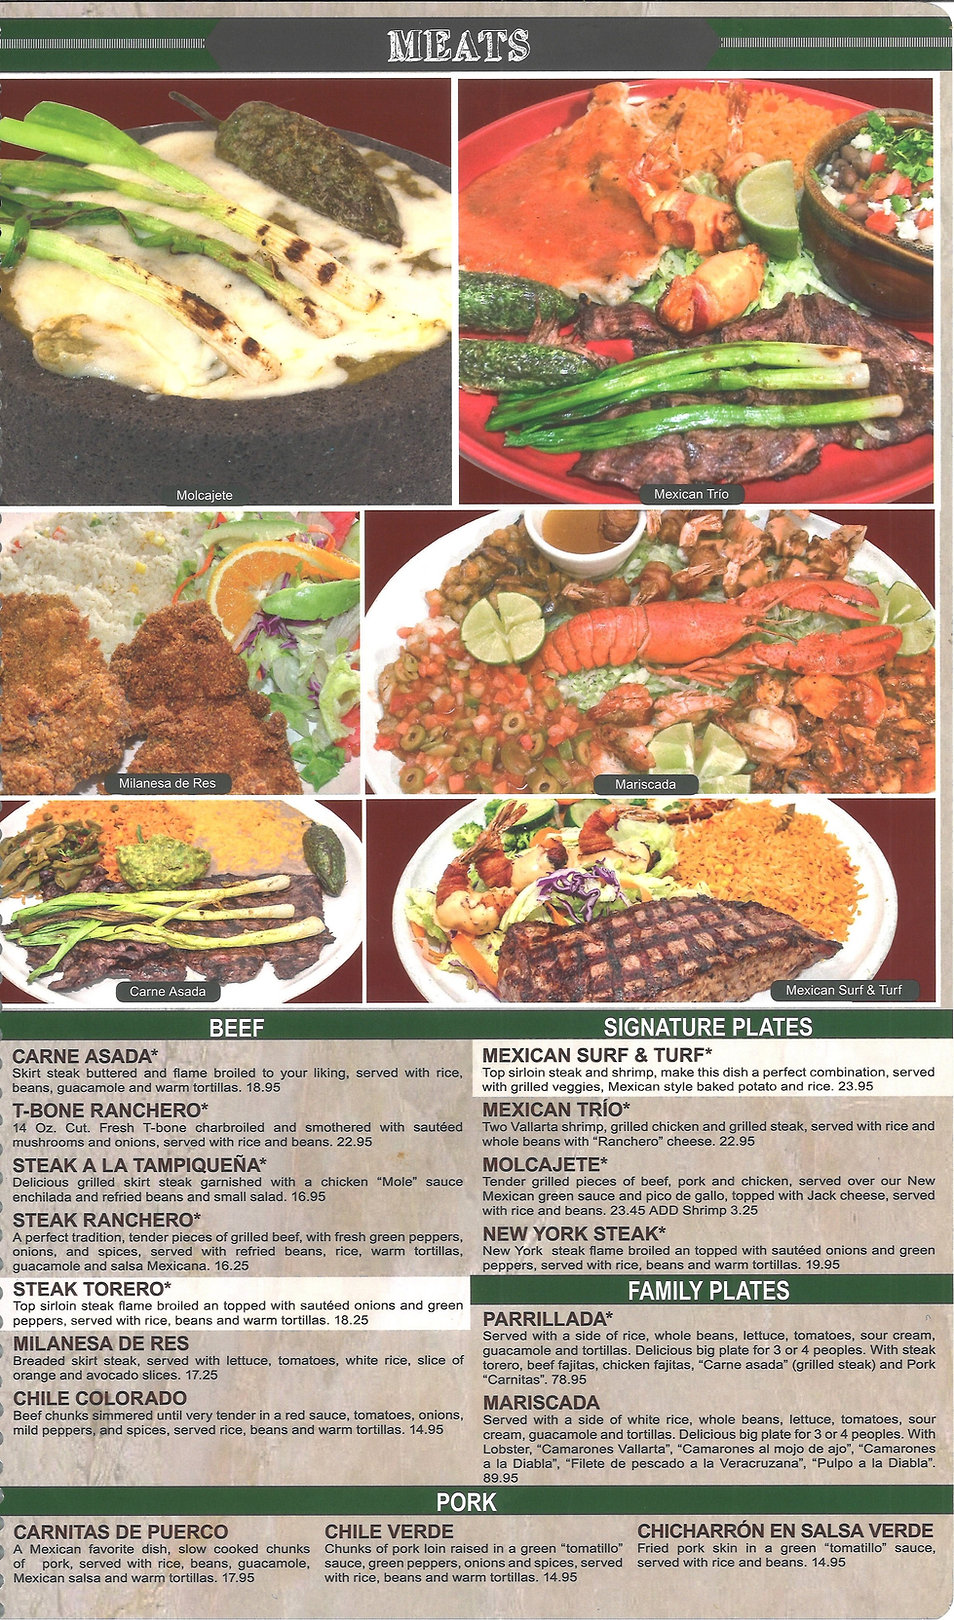 Hacienda Real Menu_meats